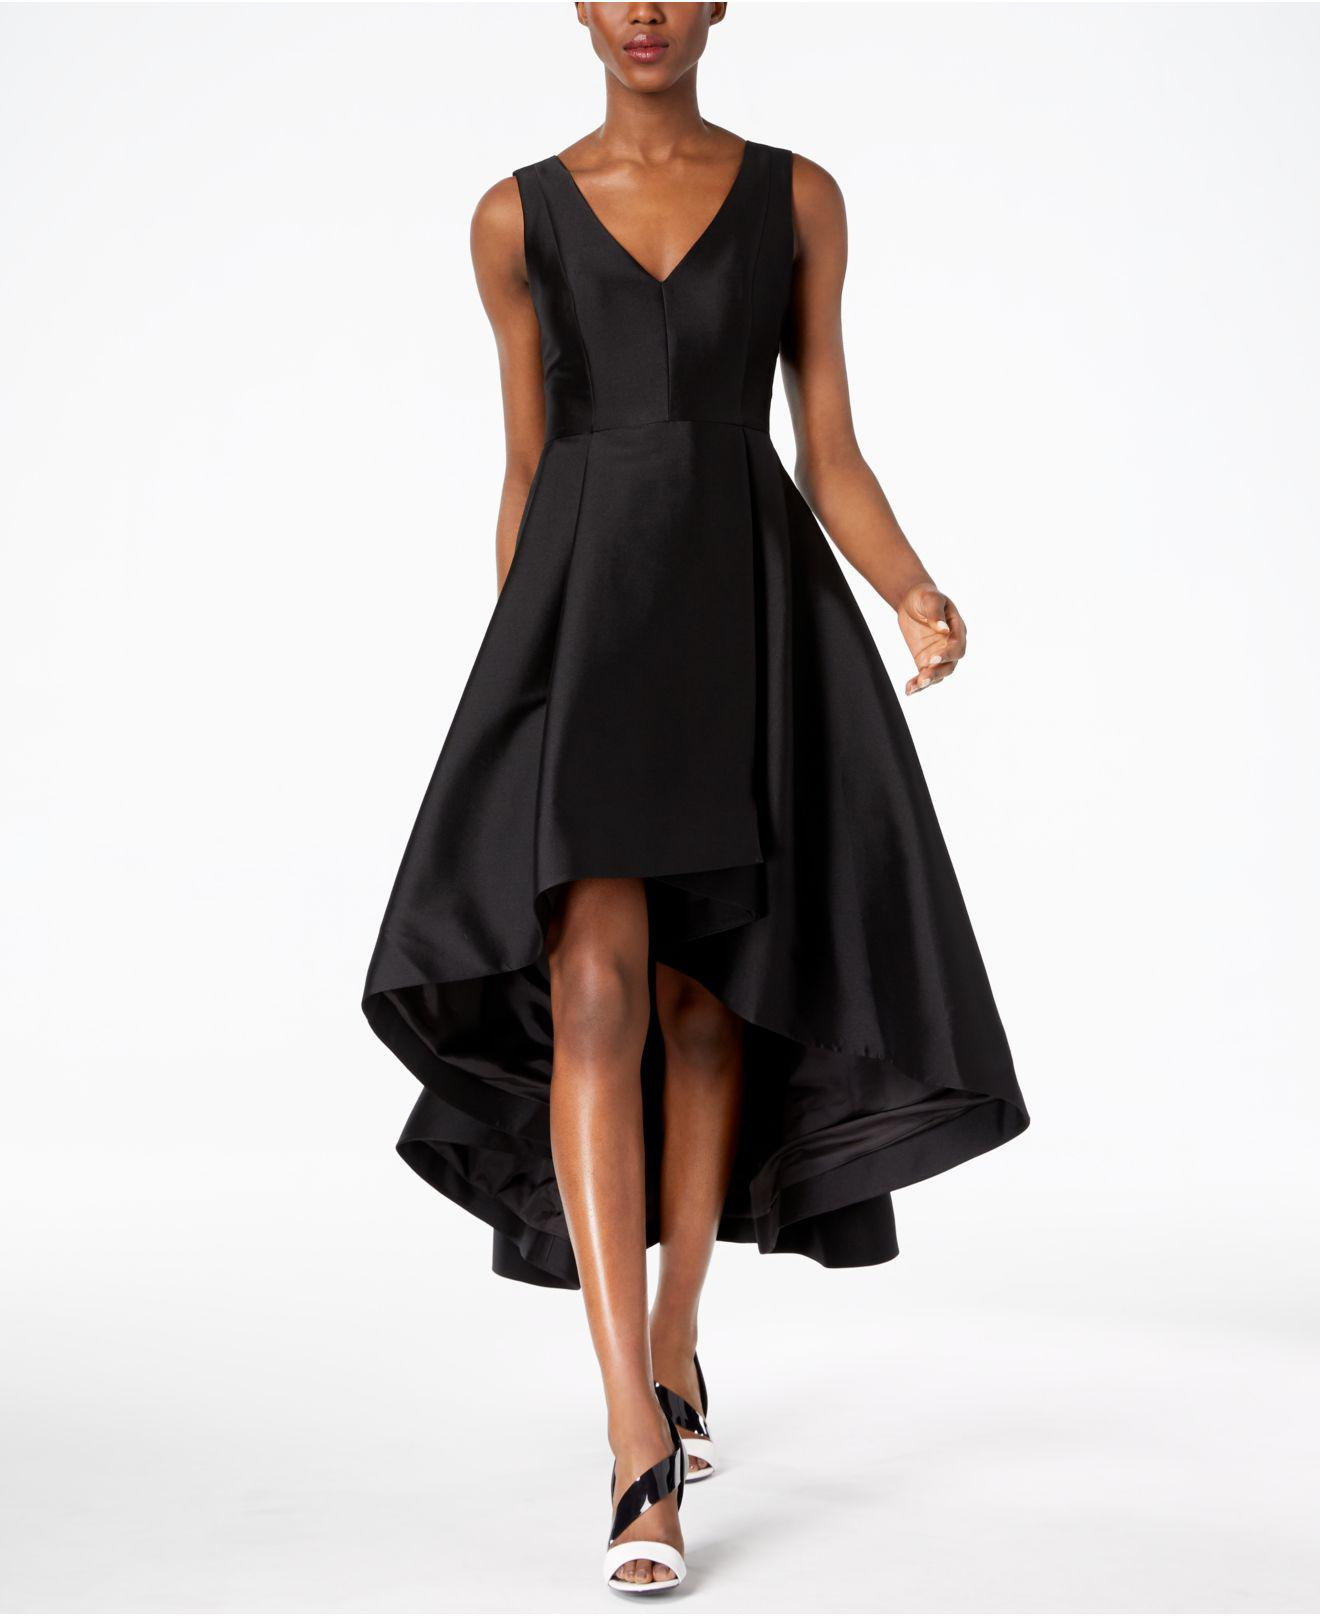 f26caef1bc Lyst - Calvin Klein High-low A-line Gown in Black - Save 50%